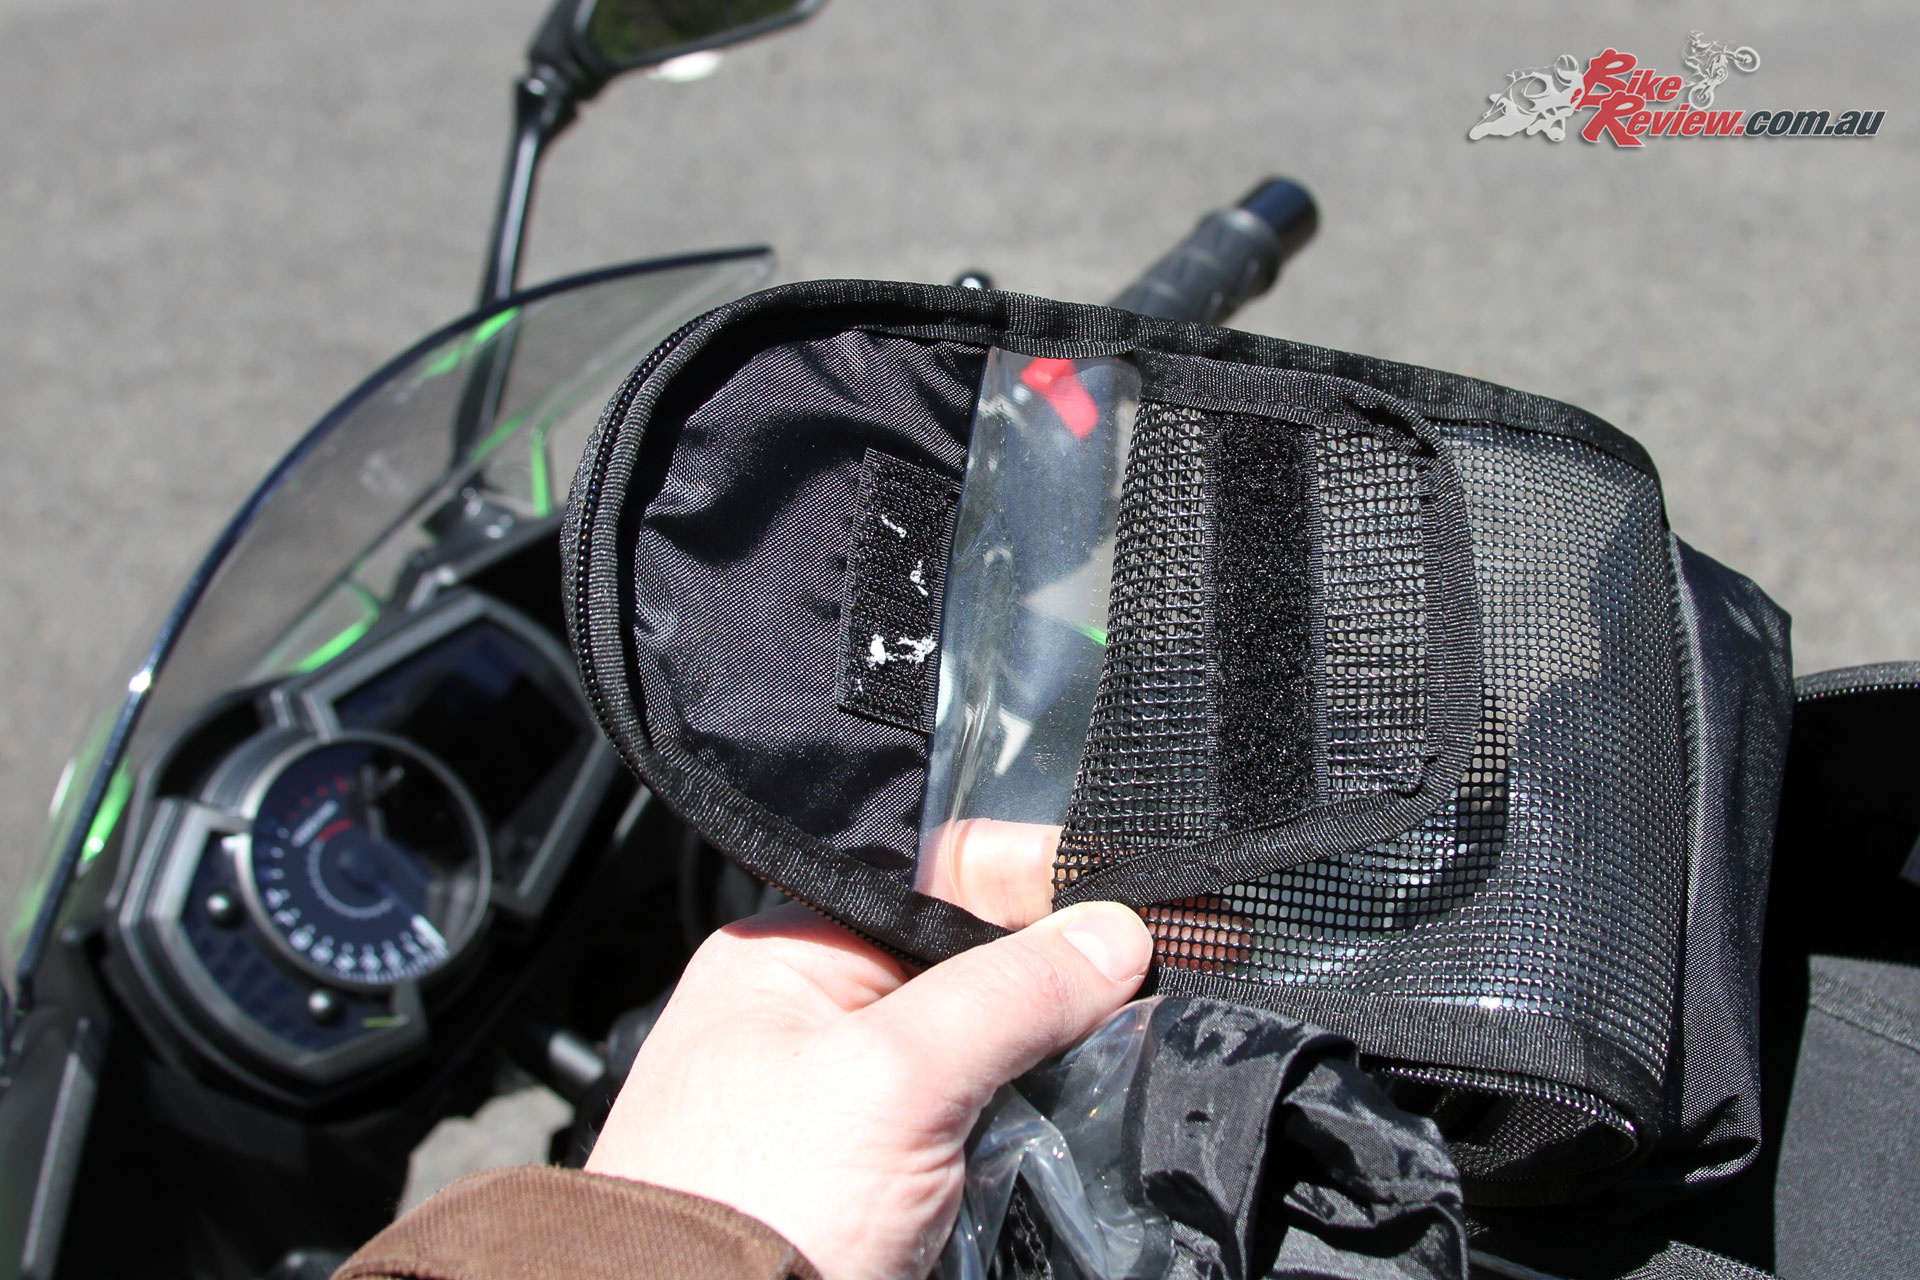 Kawasaki Genuine Tank Bag - Access to the pouch behind the clear screen is ideal for a map, phone or GPS